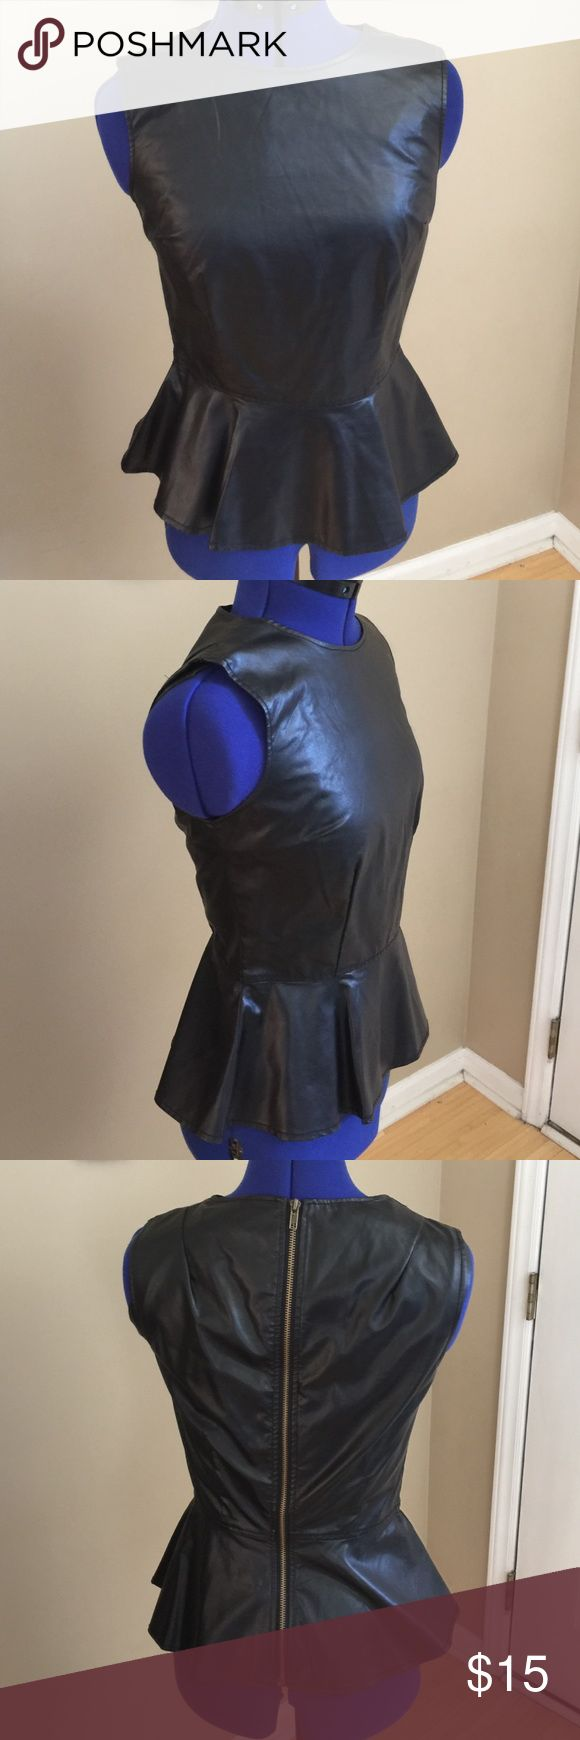 Size small faux leather black peplum top Small.  Faux leather black peplum top. Full back zip. Tops Blouses